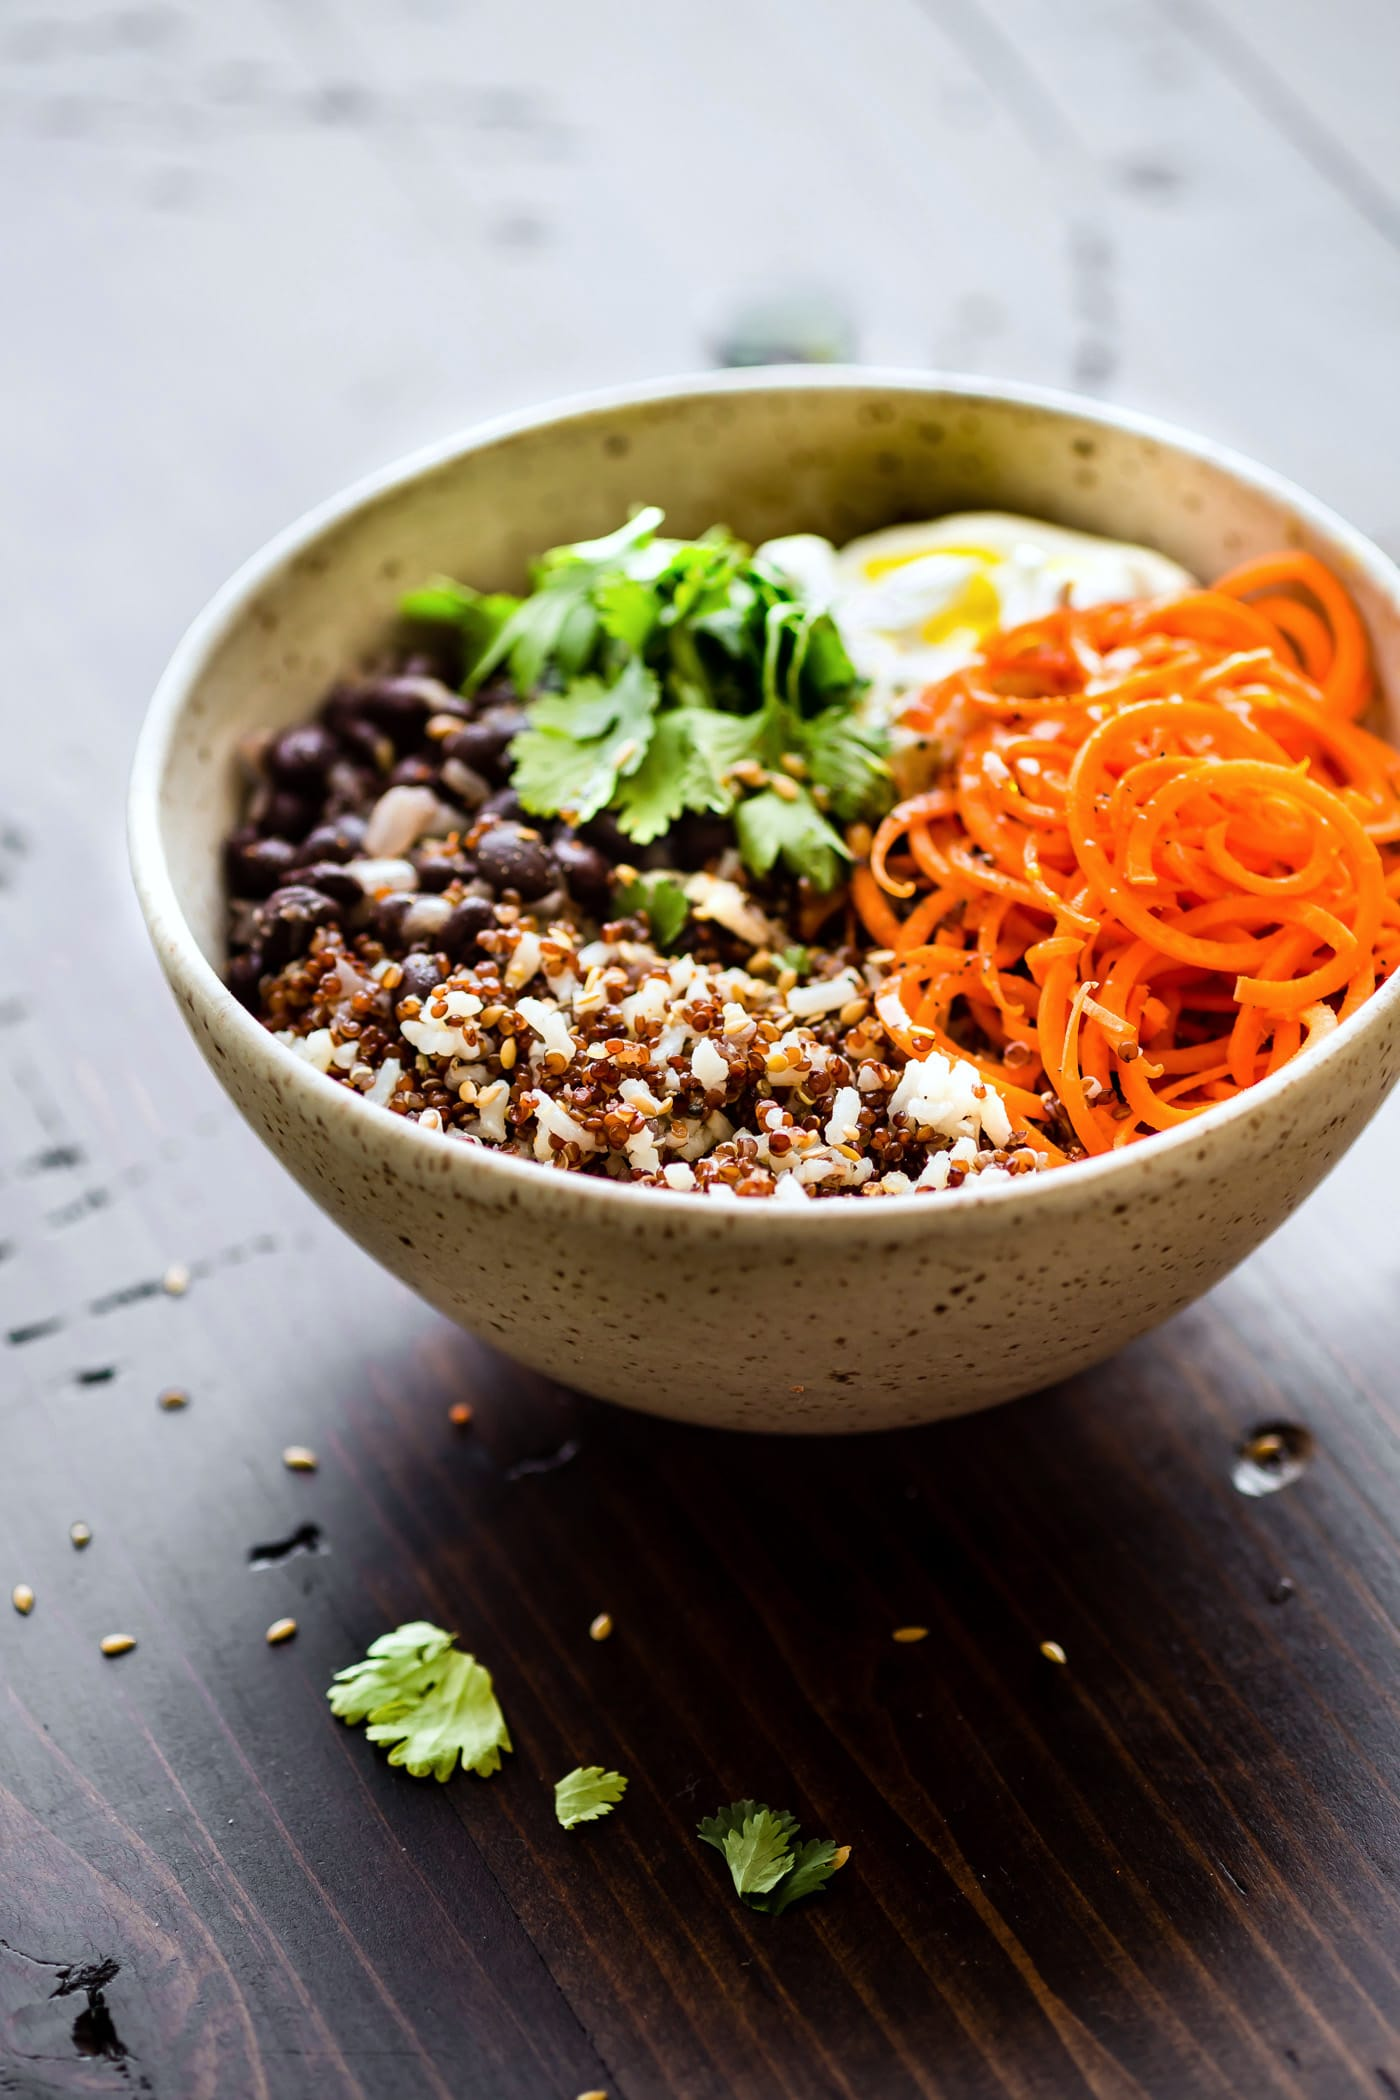 """Gluten free Balance Bowls! No matter what you call these plant powered """"balance bowls""""— Powerbowls, buddha bowls, Macro Bowls, Quinoa Bowls, etc. They truly are easy to make! A healthy meal prep bowl packed full of balanced macronutrients, vitamins, minerals, and more!"""